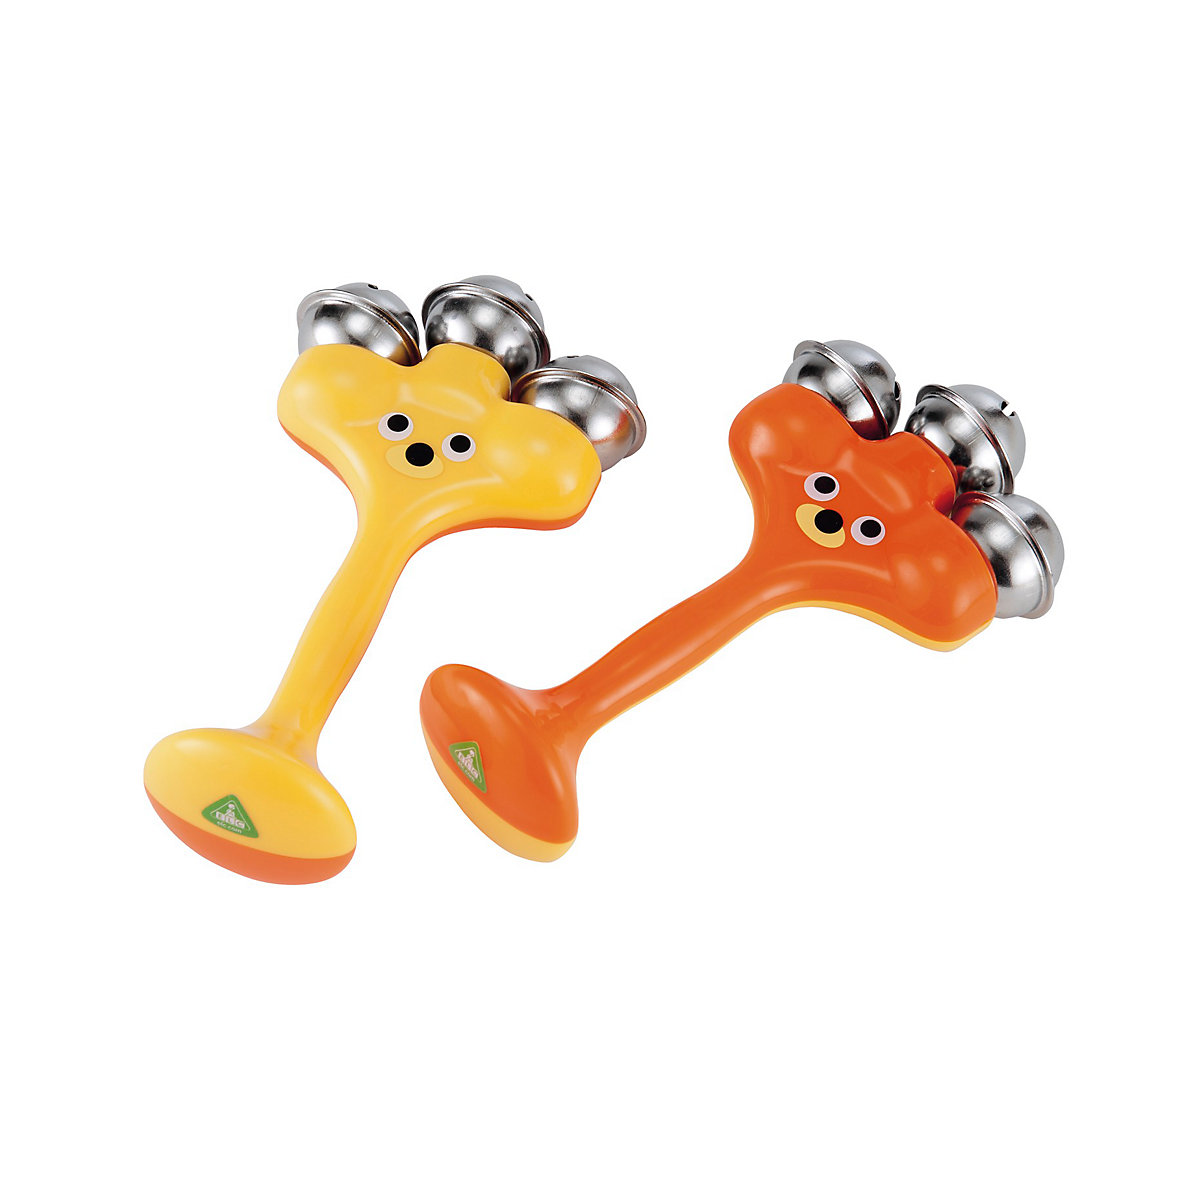 Jingle Bells Toy From 3 years